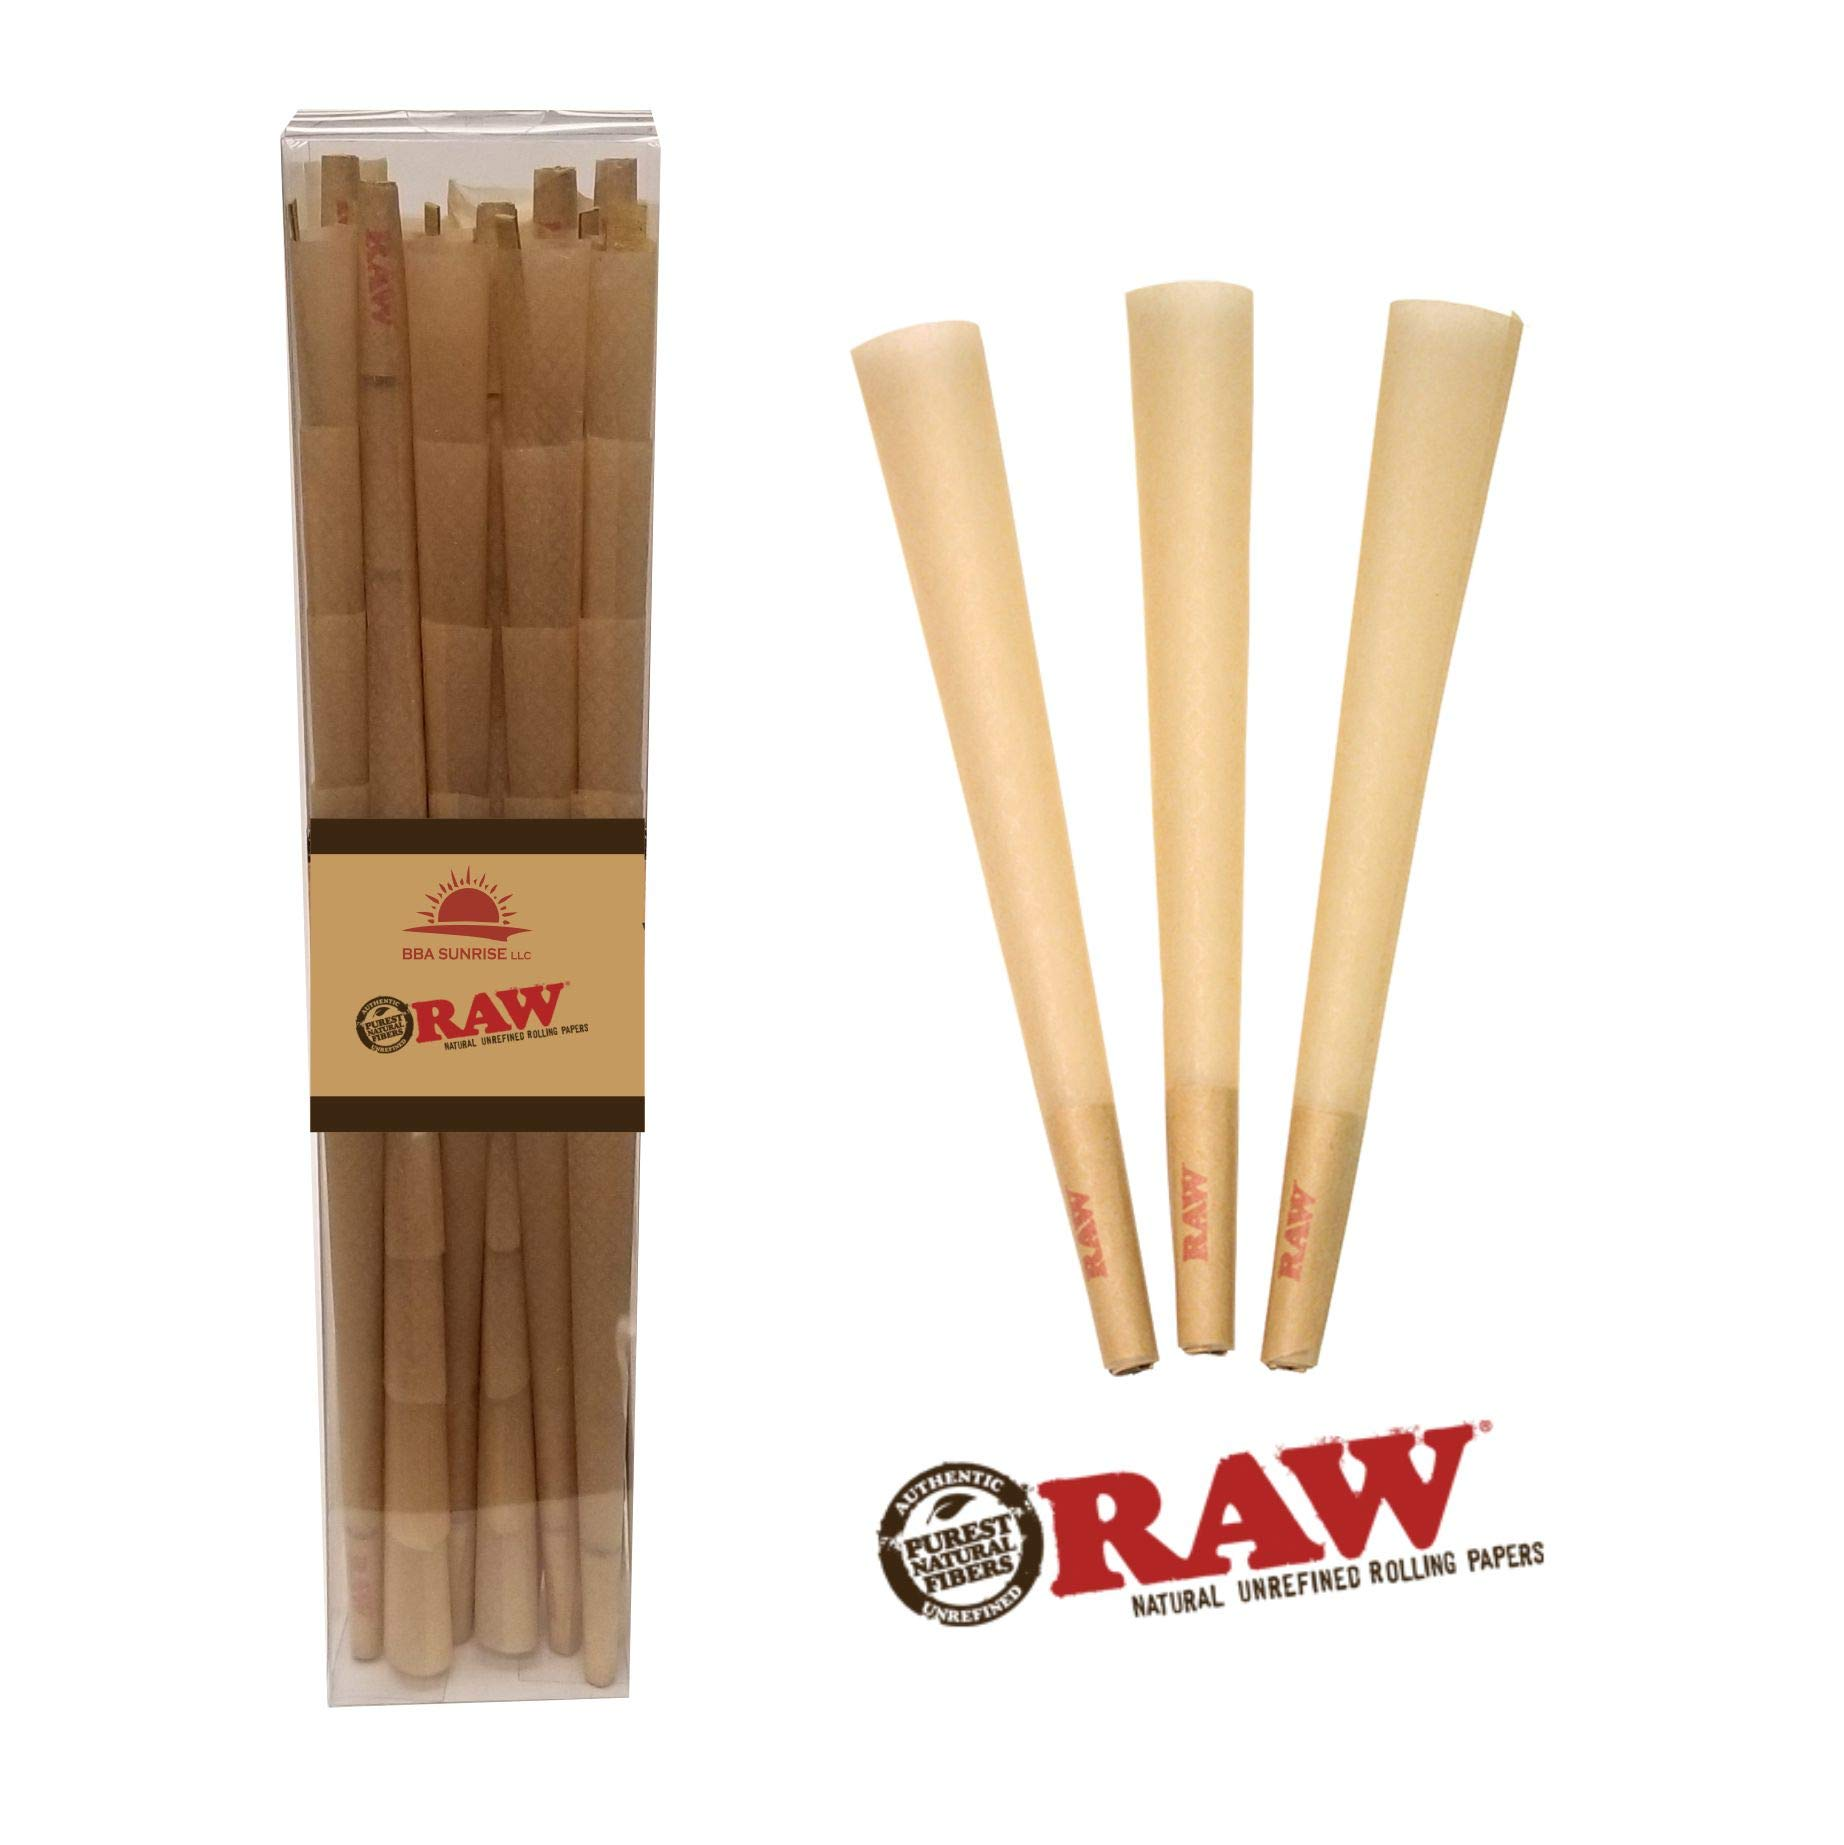 RAW BBA Sunrise Classic King Size Pre-Rolled Cones with Filter Tips - 100 Pack and Cone Loader